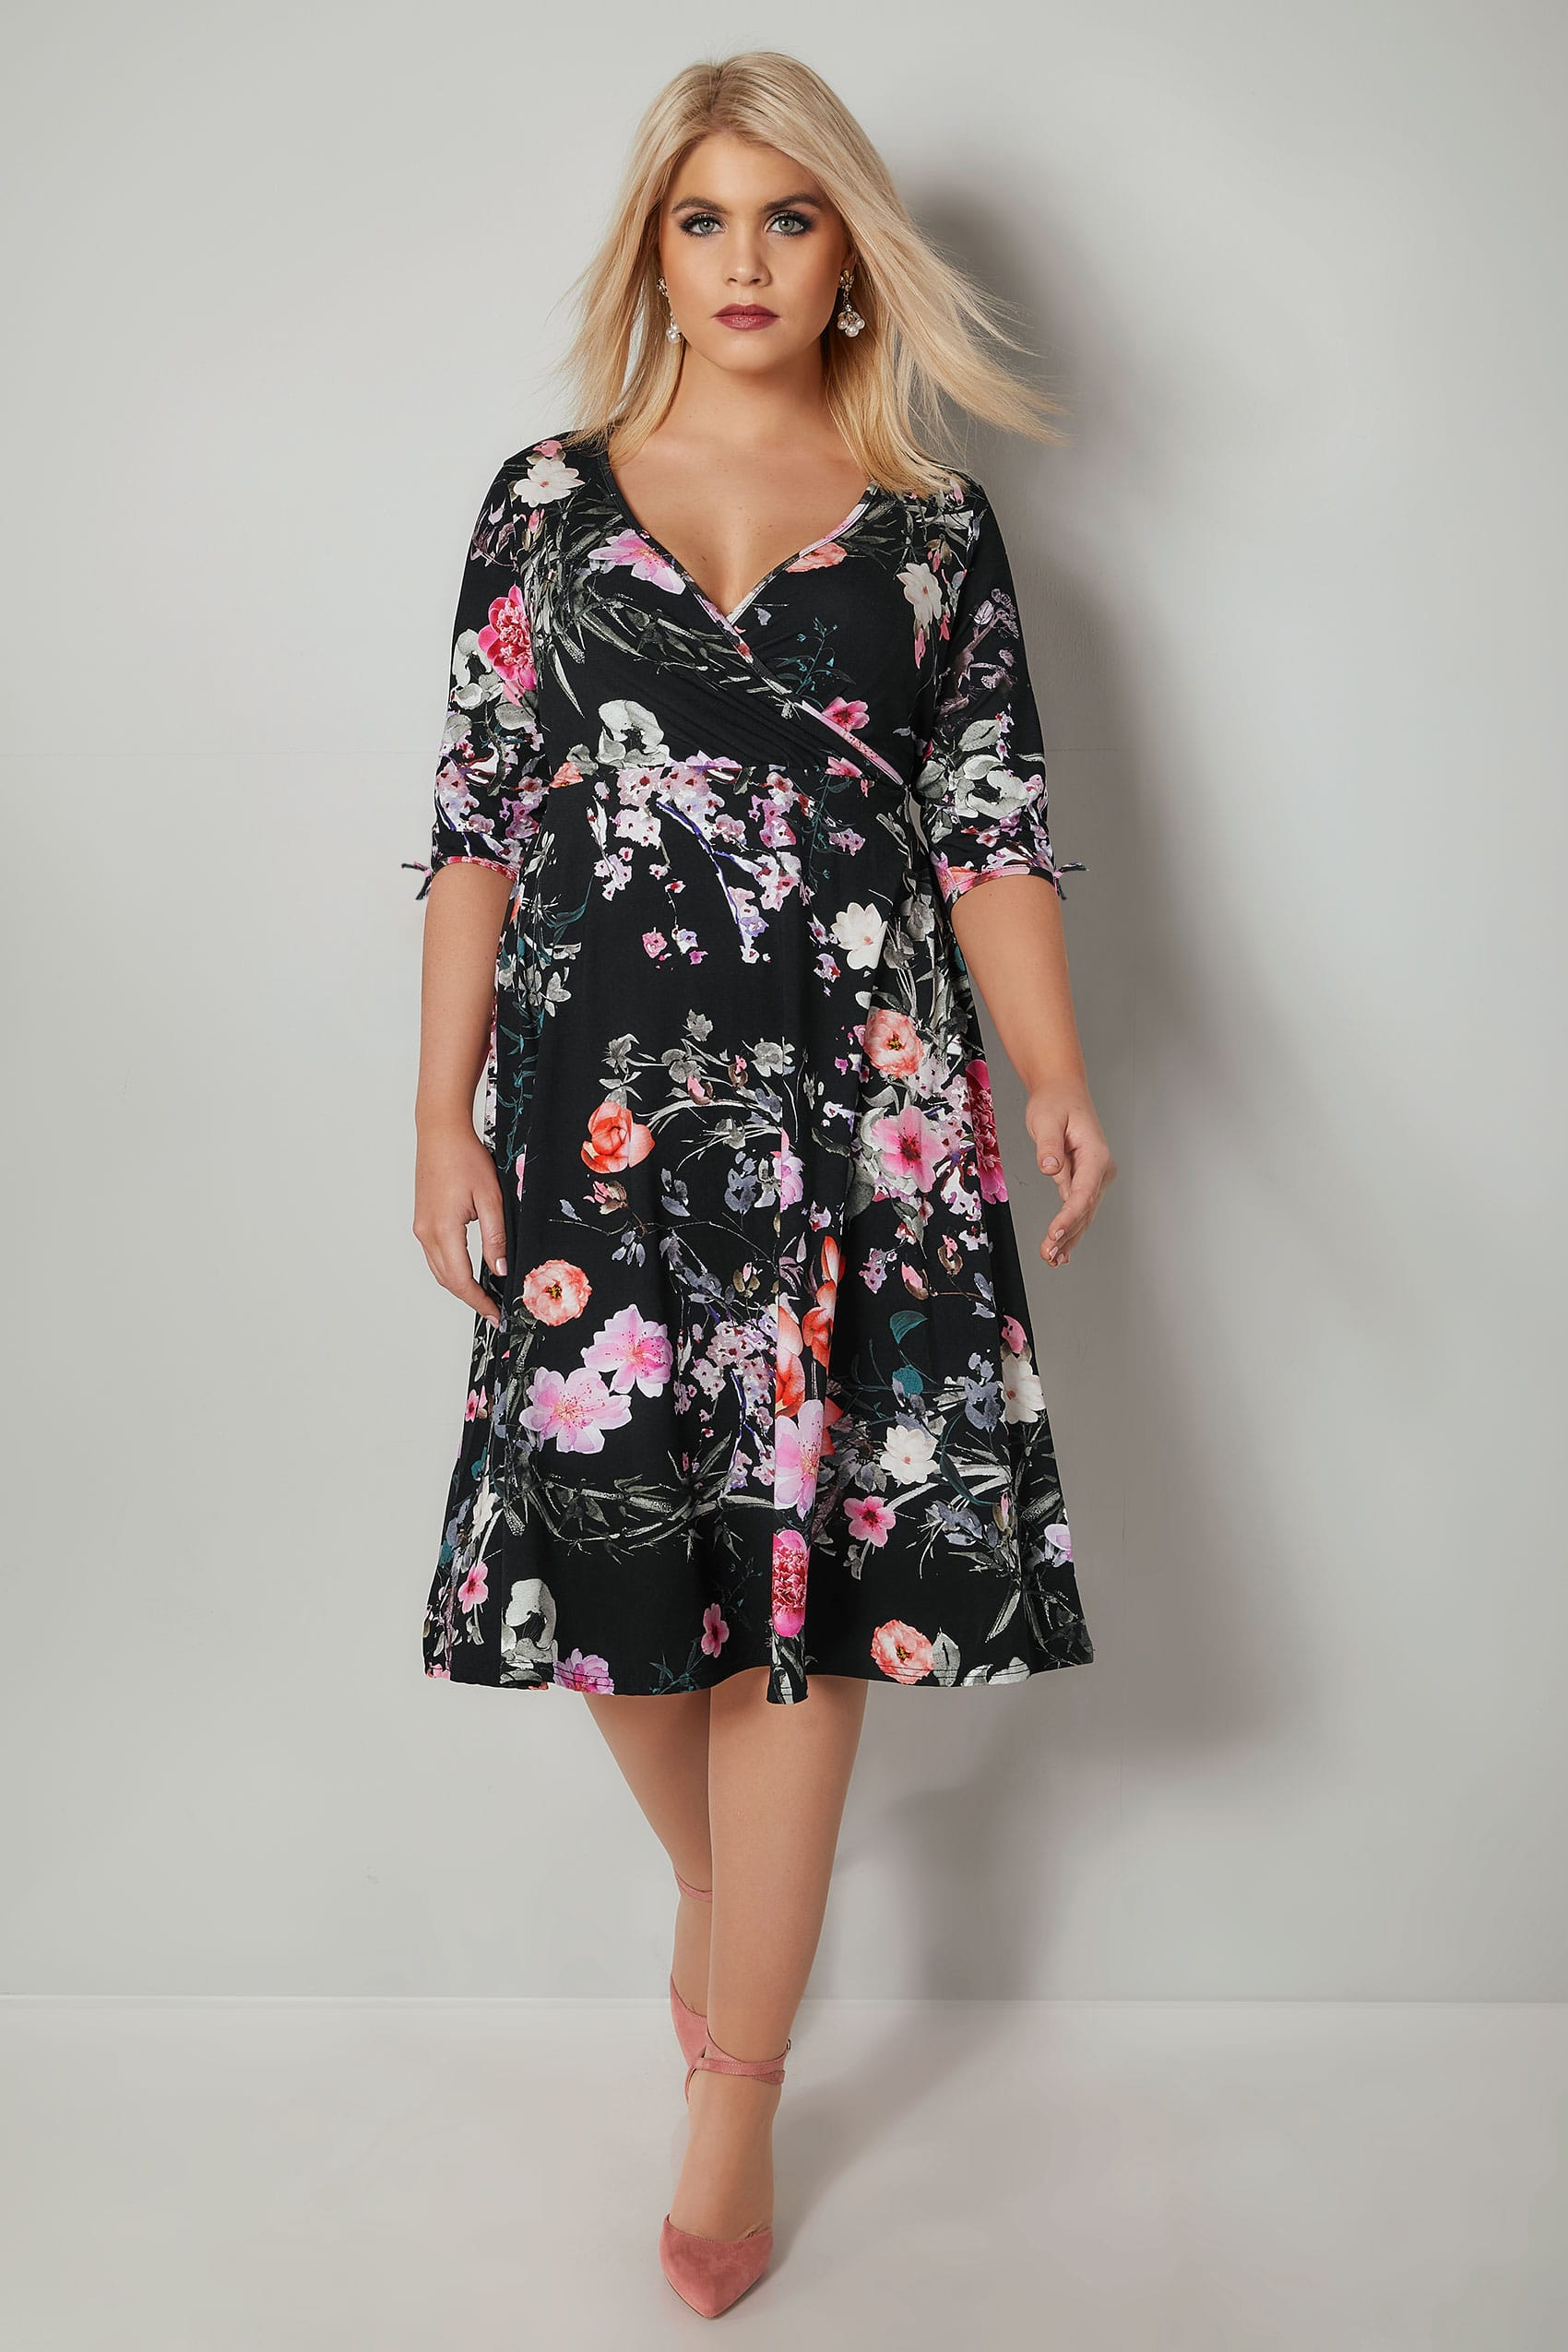 de5580ea198 YOURS LONDON Black Floral Wrap Dress With Tie Sleeves, Plus size 16 ...